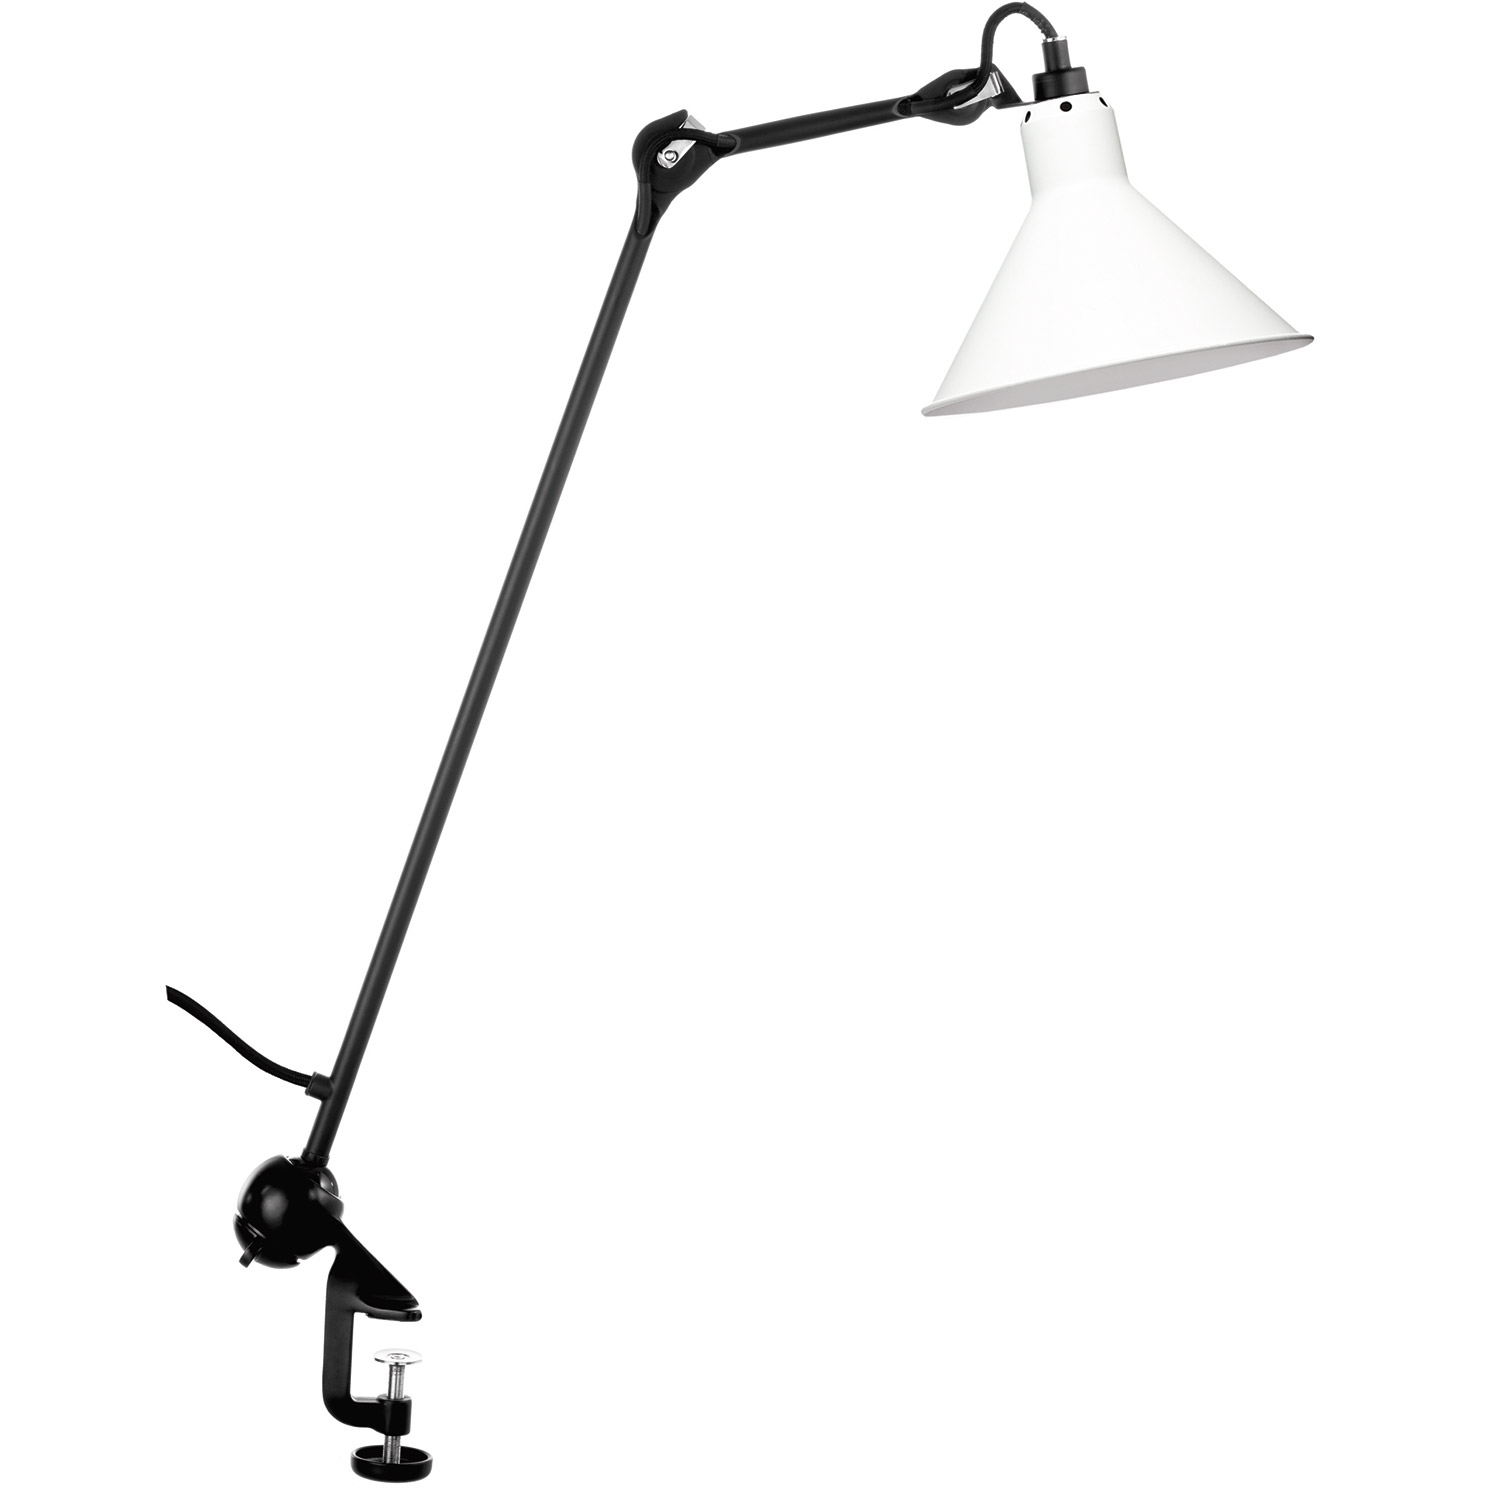 N°201 architect bordslampa, svart/vit